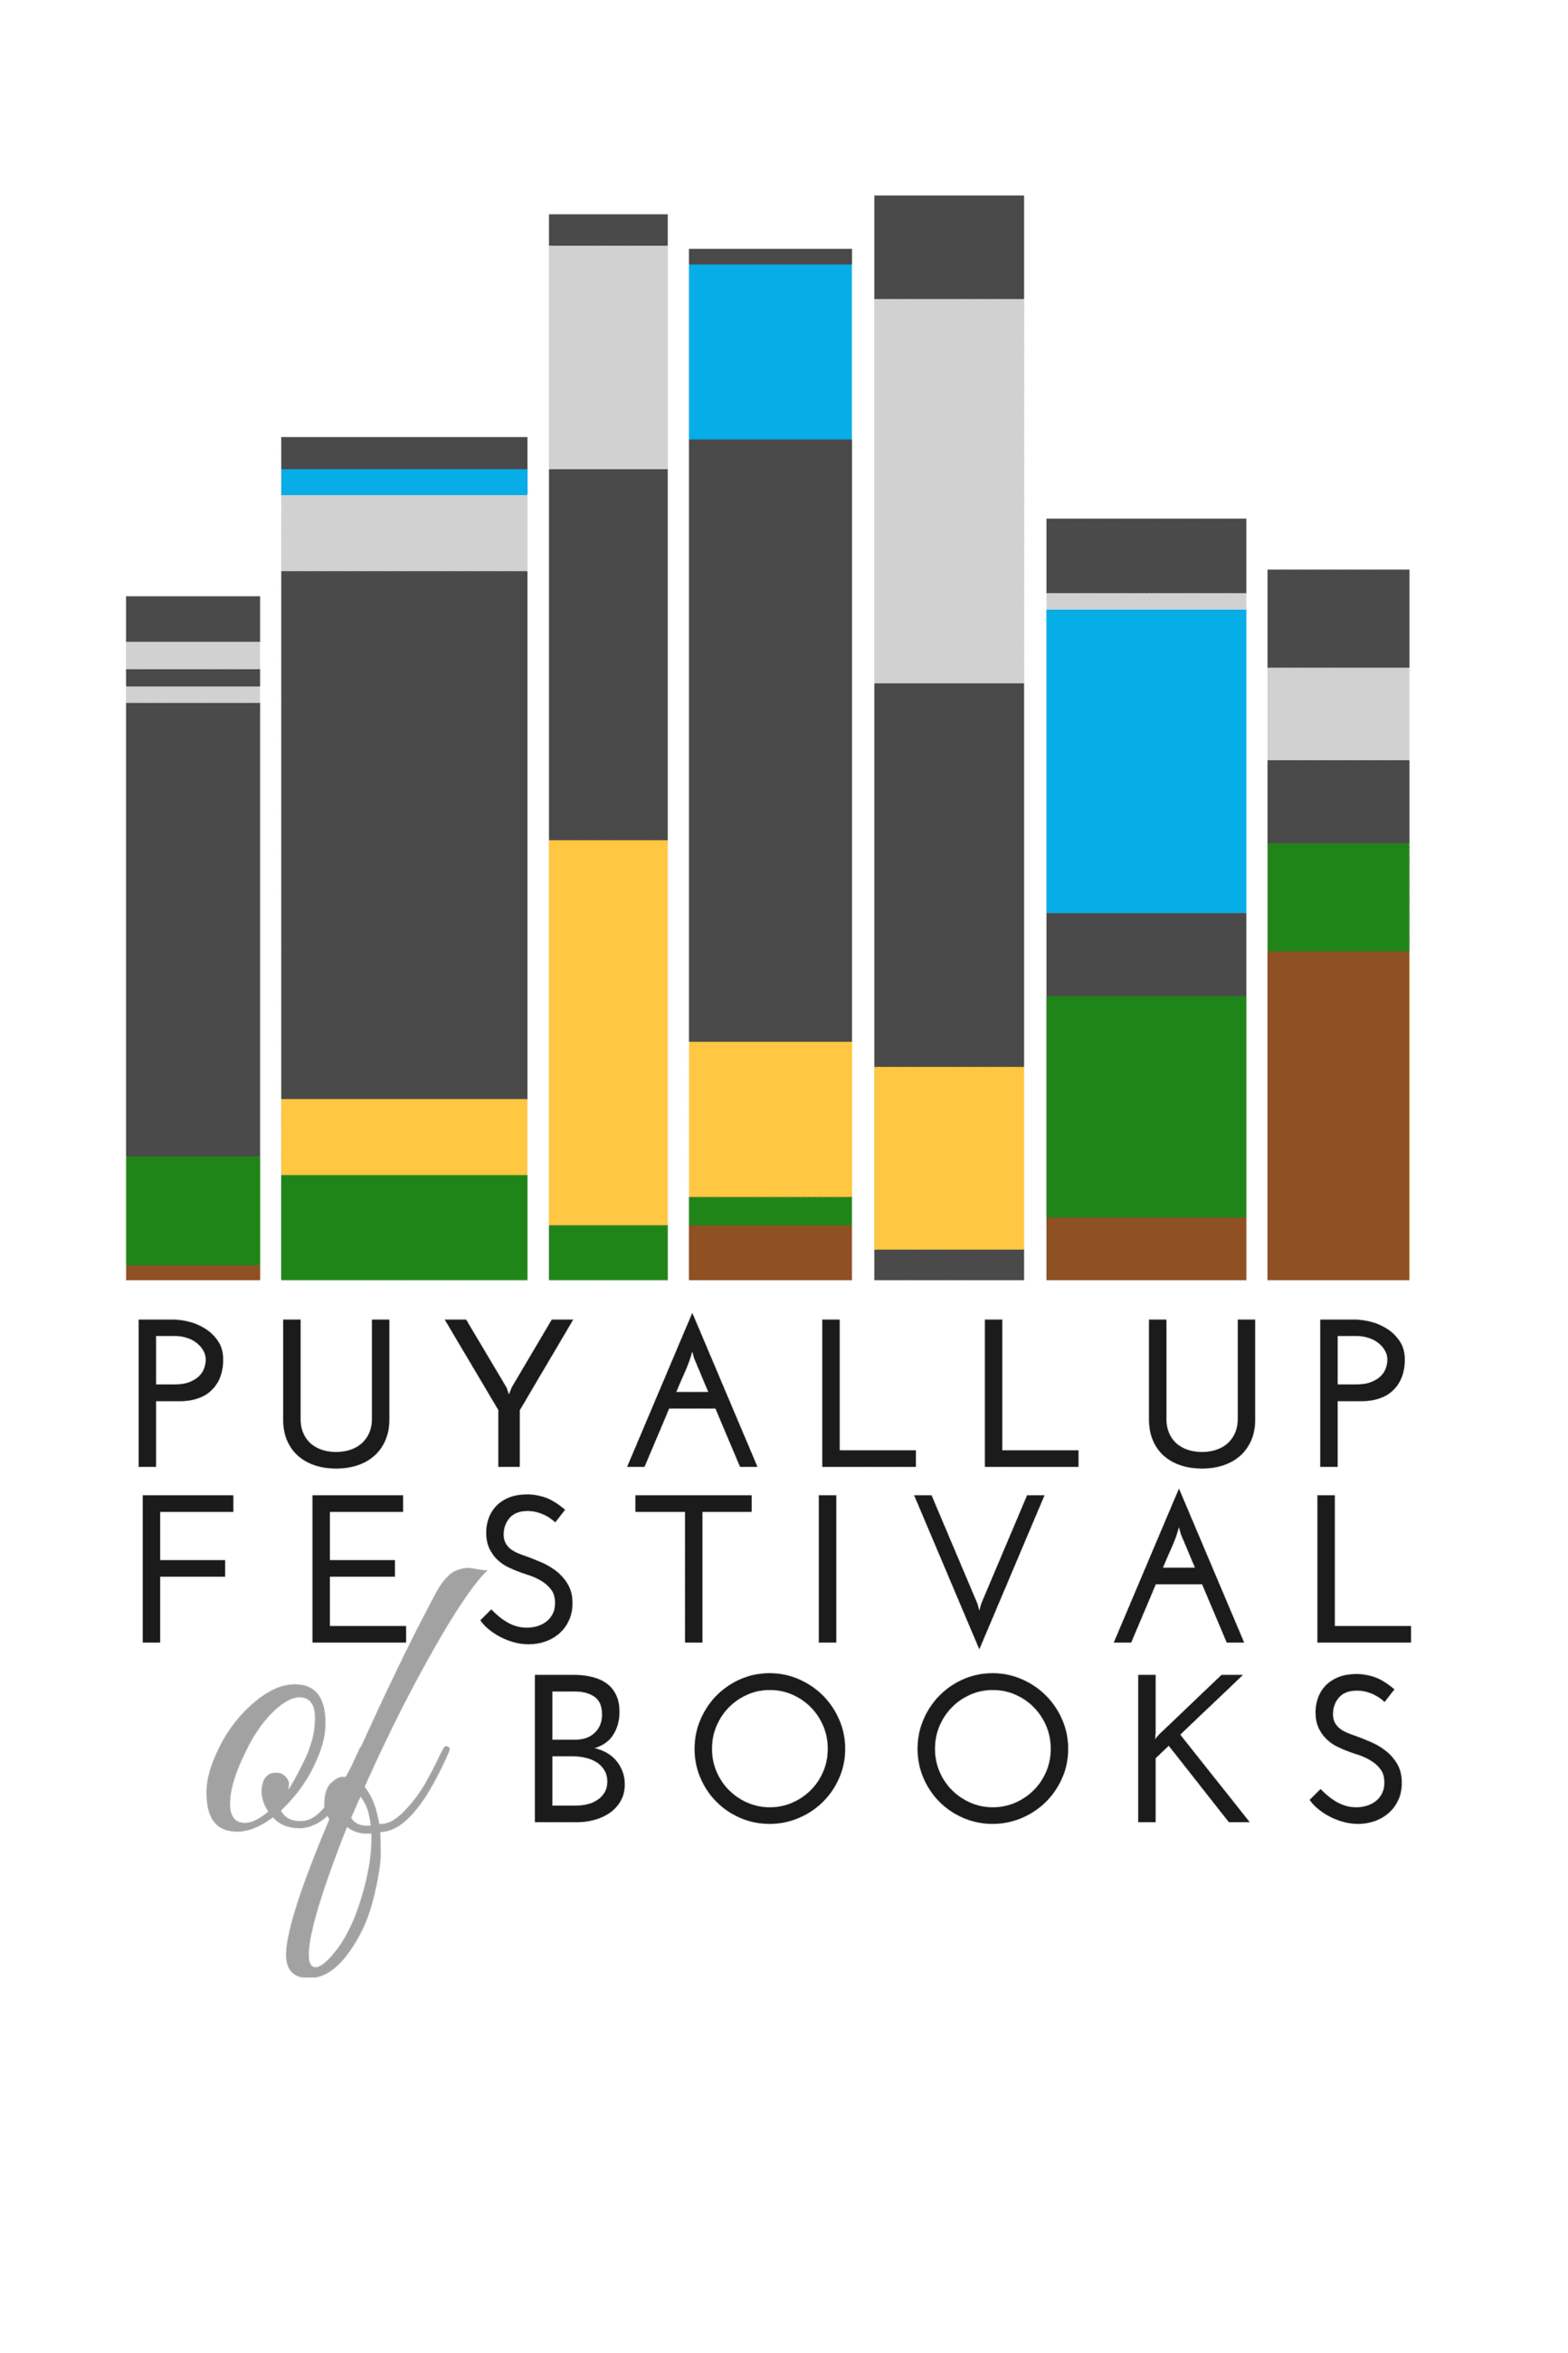 Puyallup Festival of Books